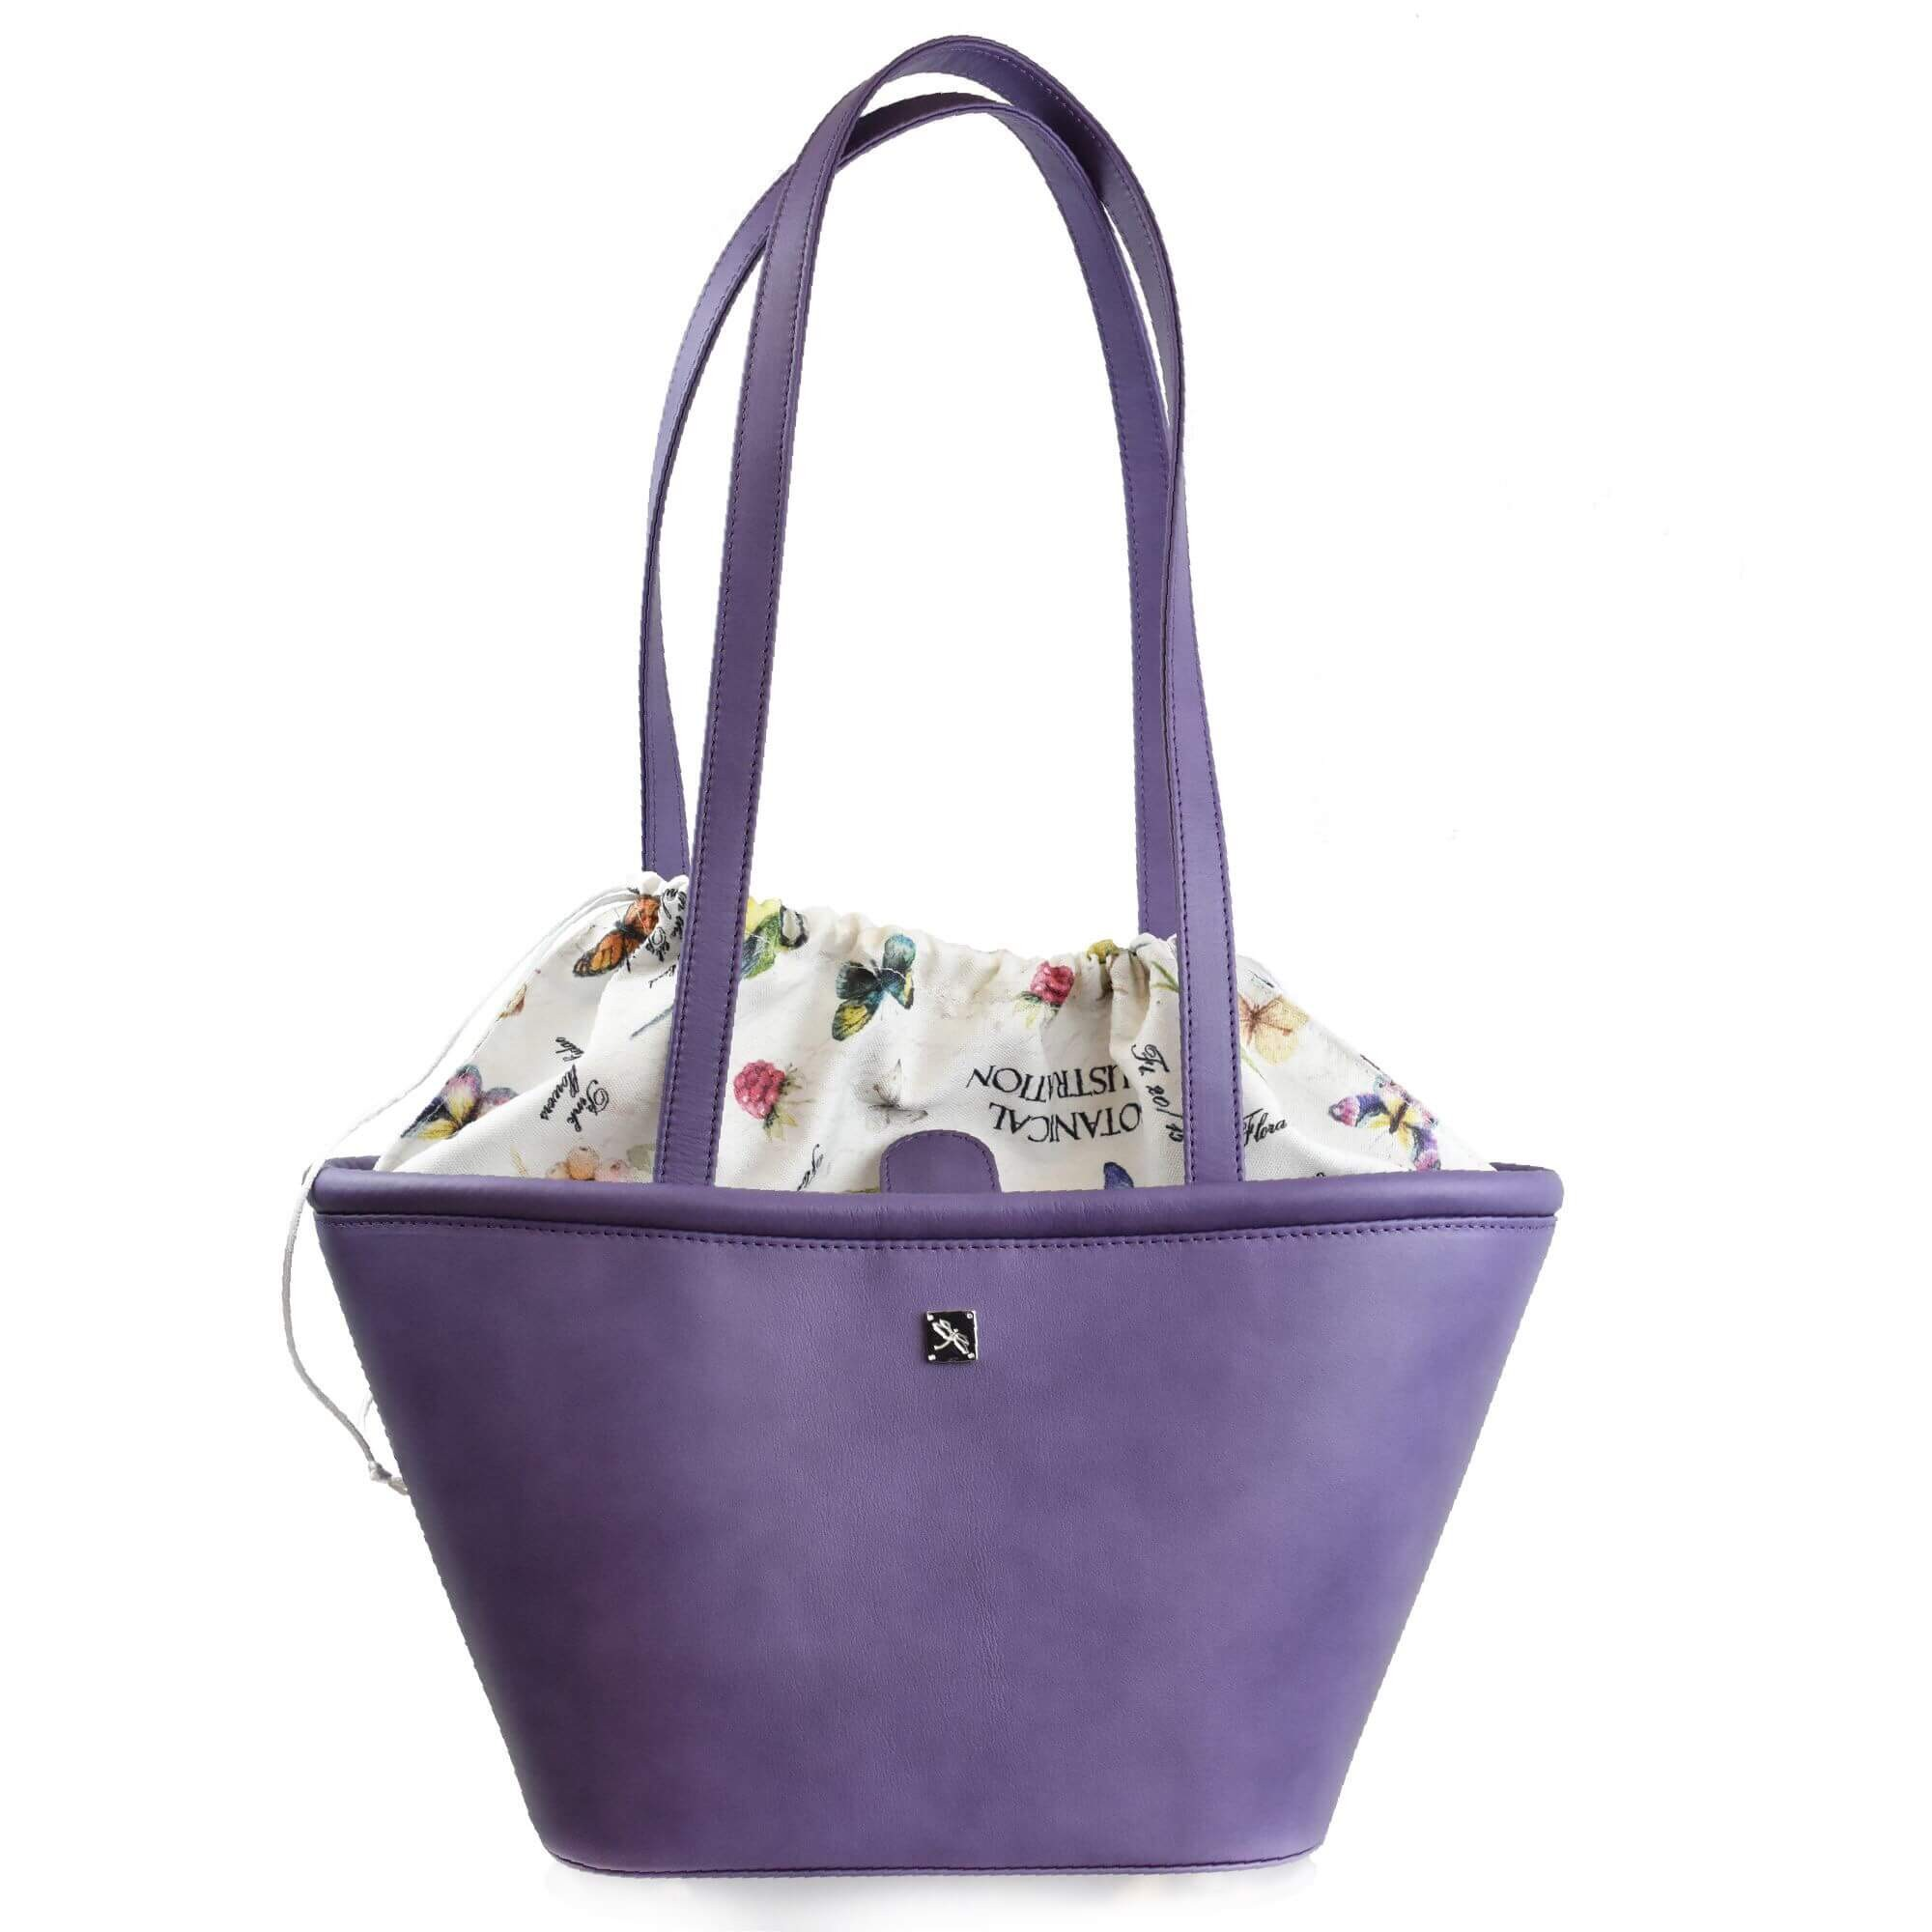 Lavender Leather Structured Shoulder Basket. Leather Handbags | TARA´S